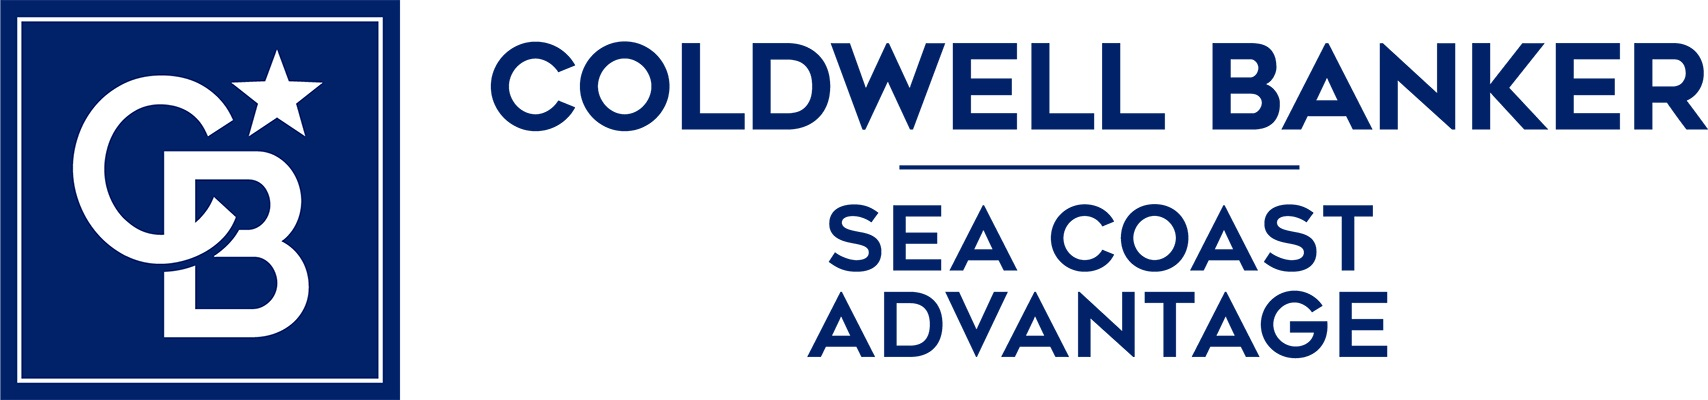 Ed Pullen - Coldwell Banker Sea Coast Advantage Realty